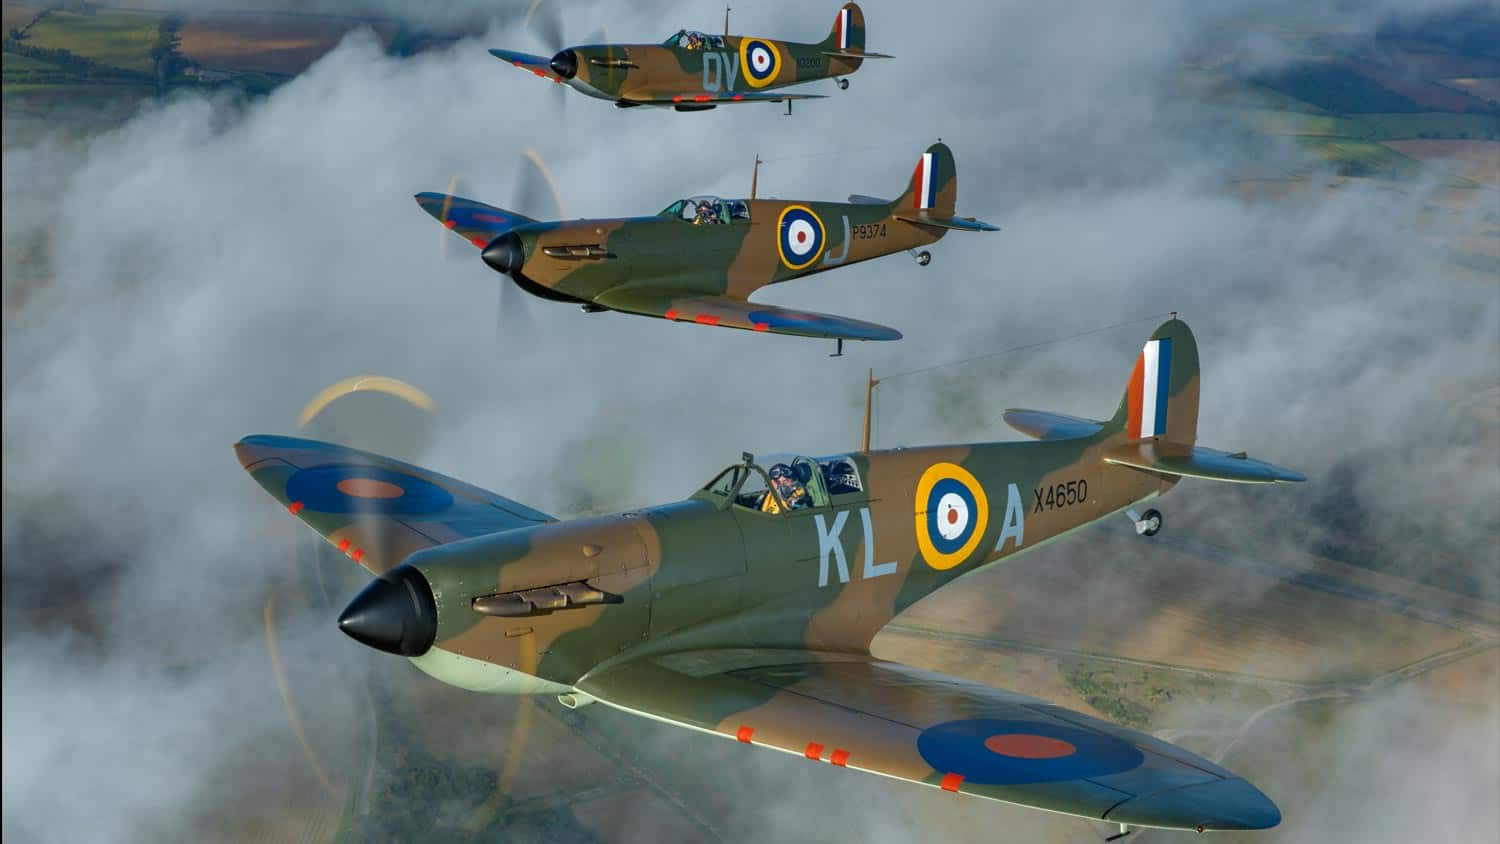 Spitfire Review – Romanticising The Iconic Aircraft - OC Movie Reviews - Movie Reviews, Movie News, Documentary Reviews, Short Films, Short Film Reviews, Trailers, Movie Trailers, Interviews, film reviews, film news, hollywood, indie films, documentaries